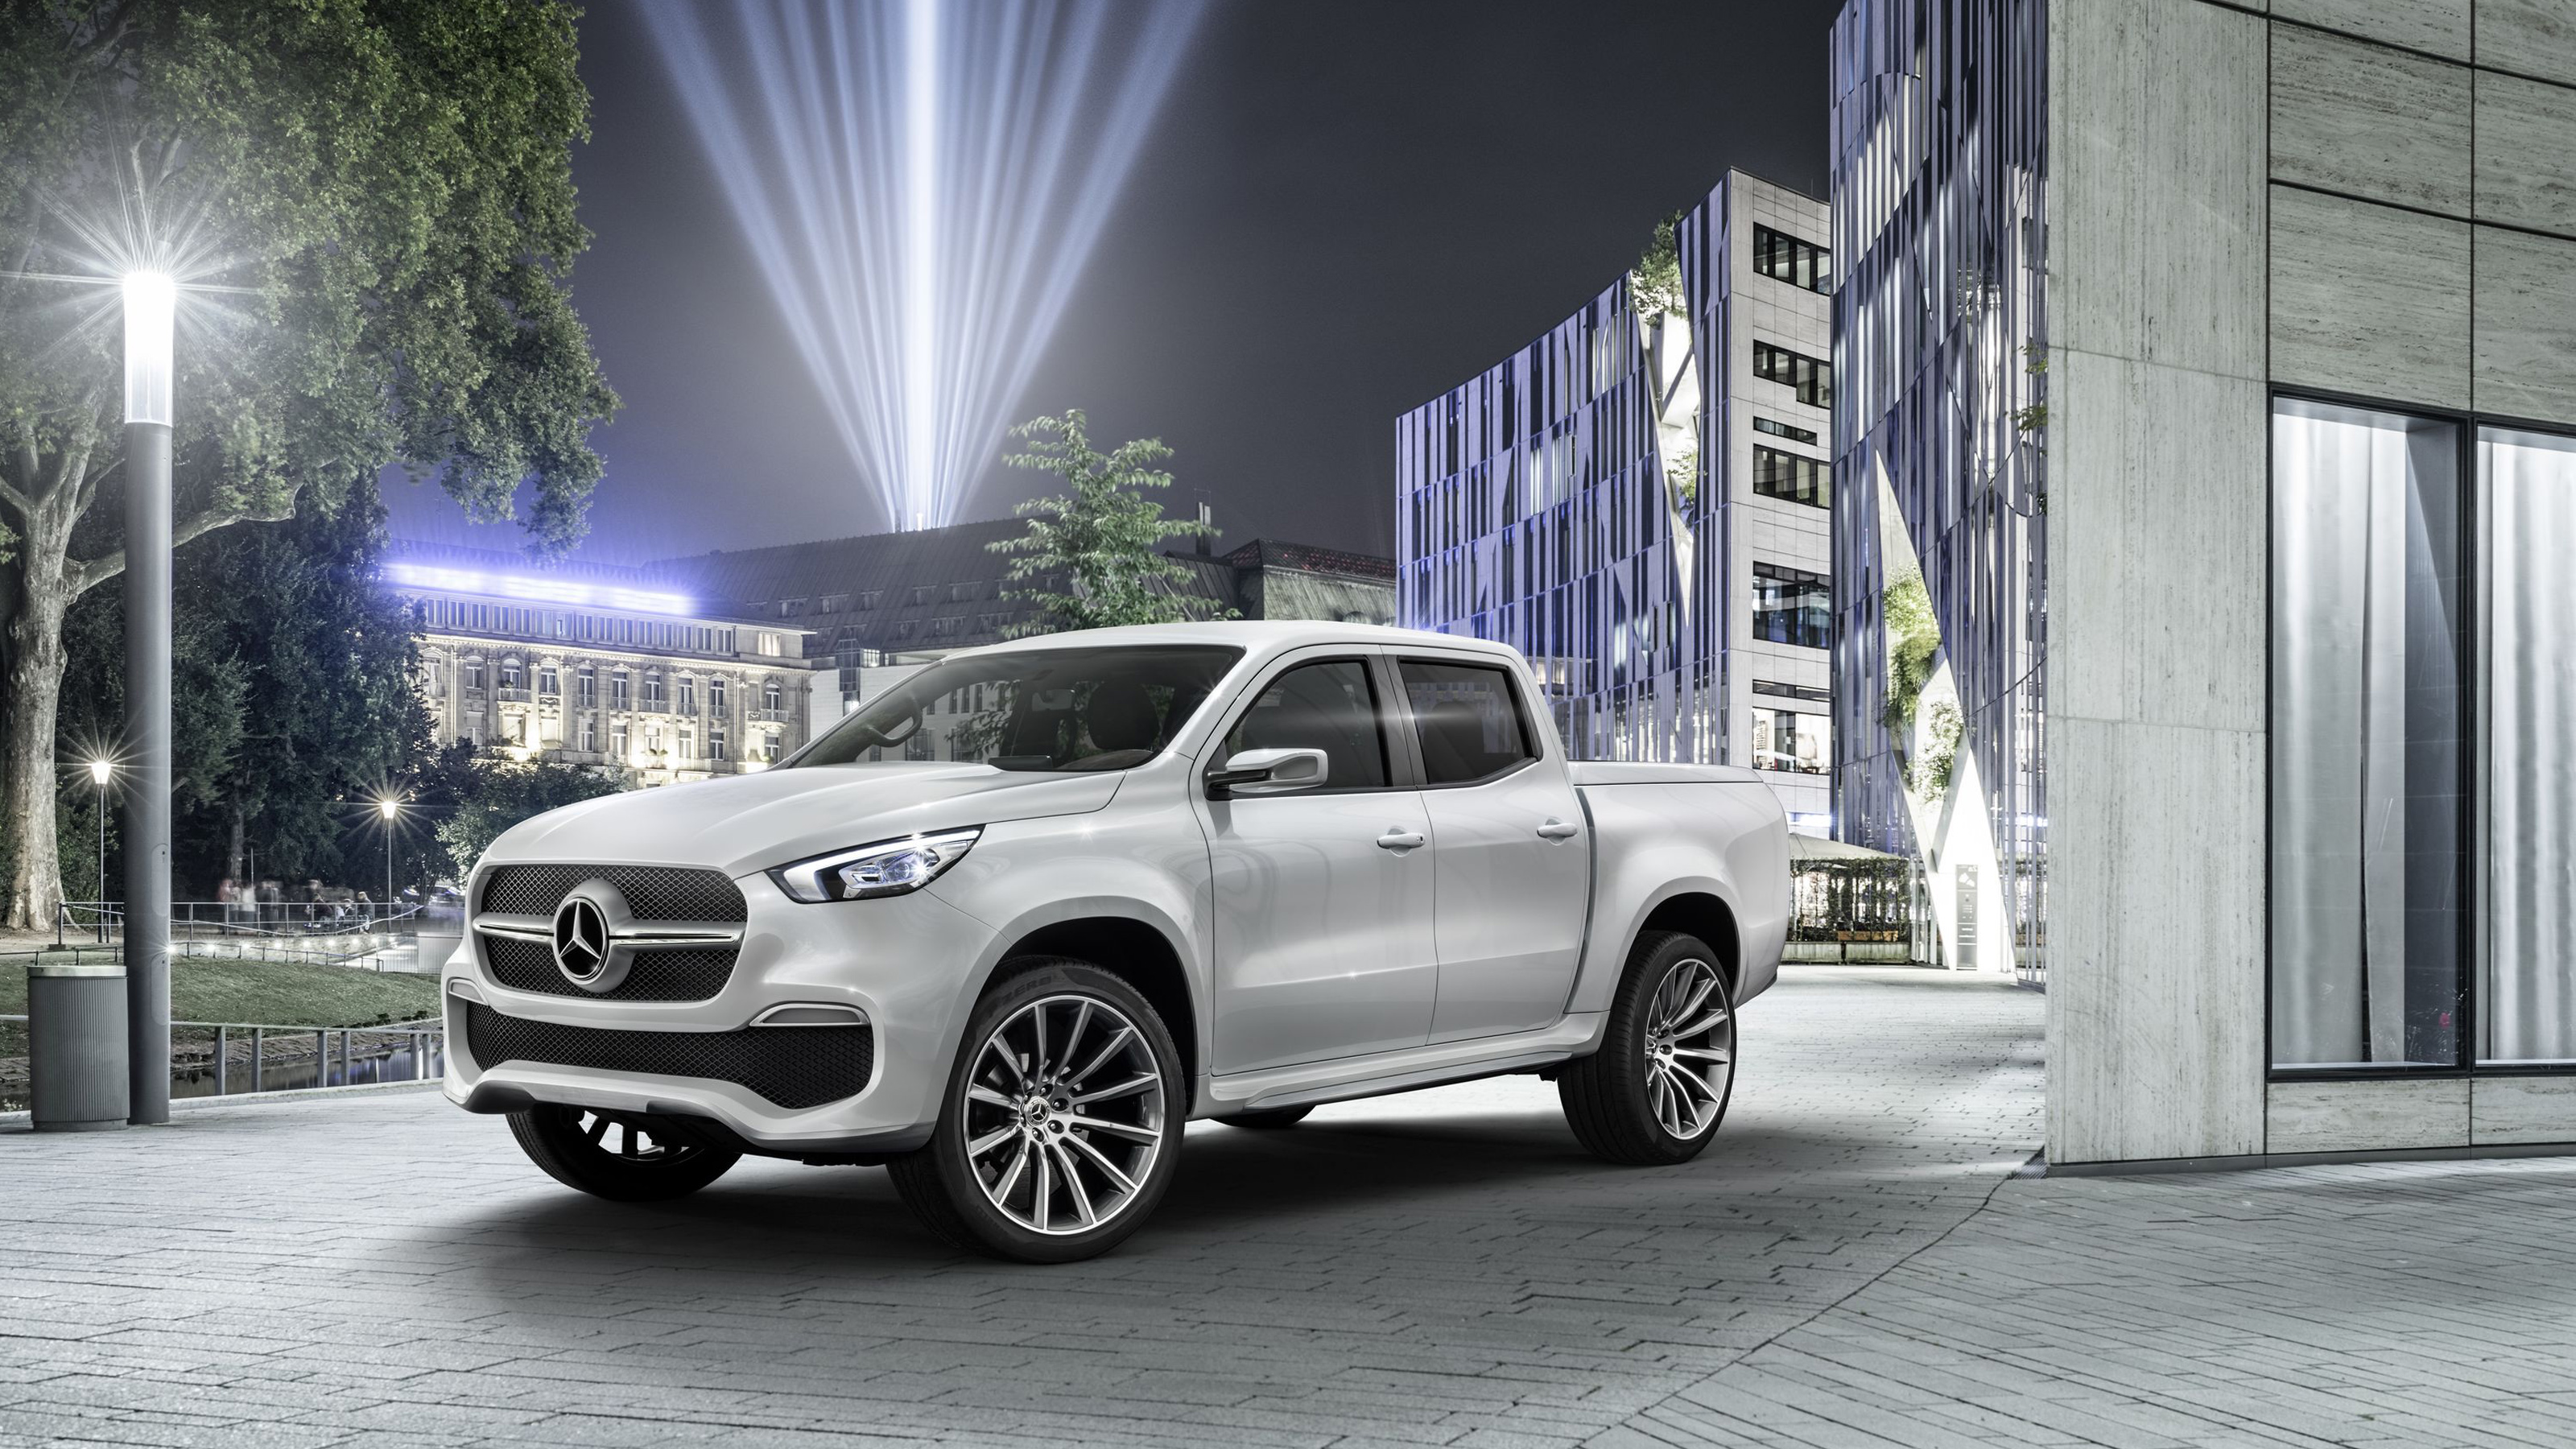 2017 mercedes benz x class pickup truck wallpaper hd car